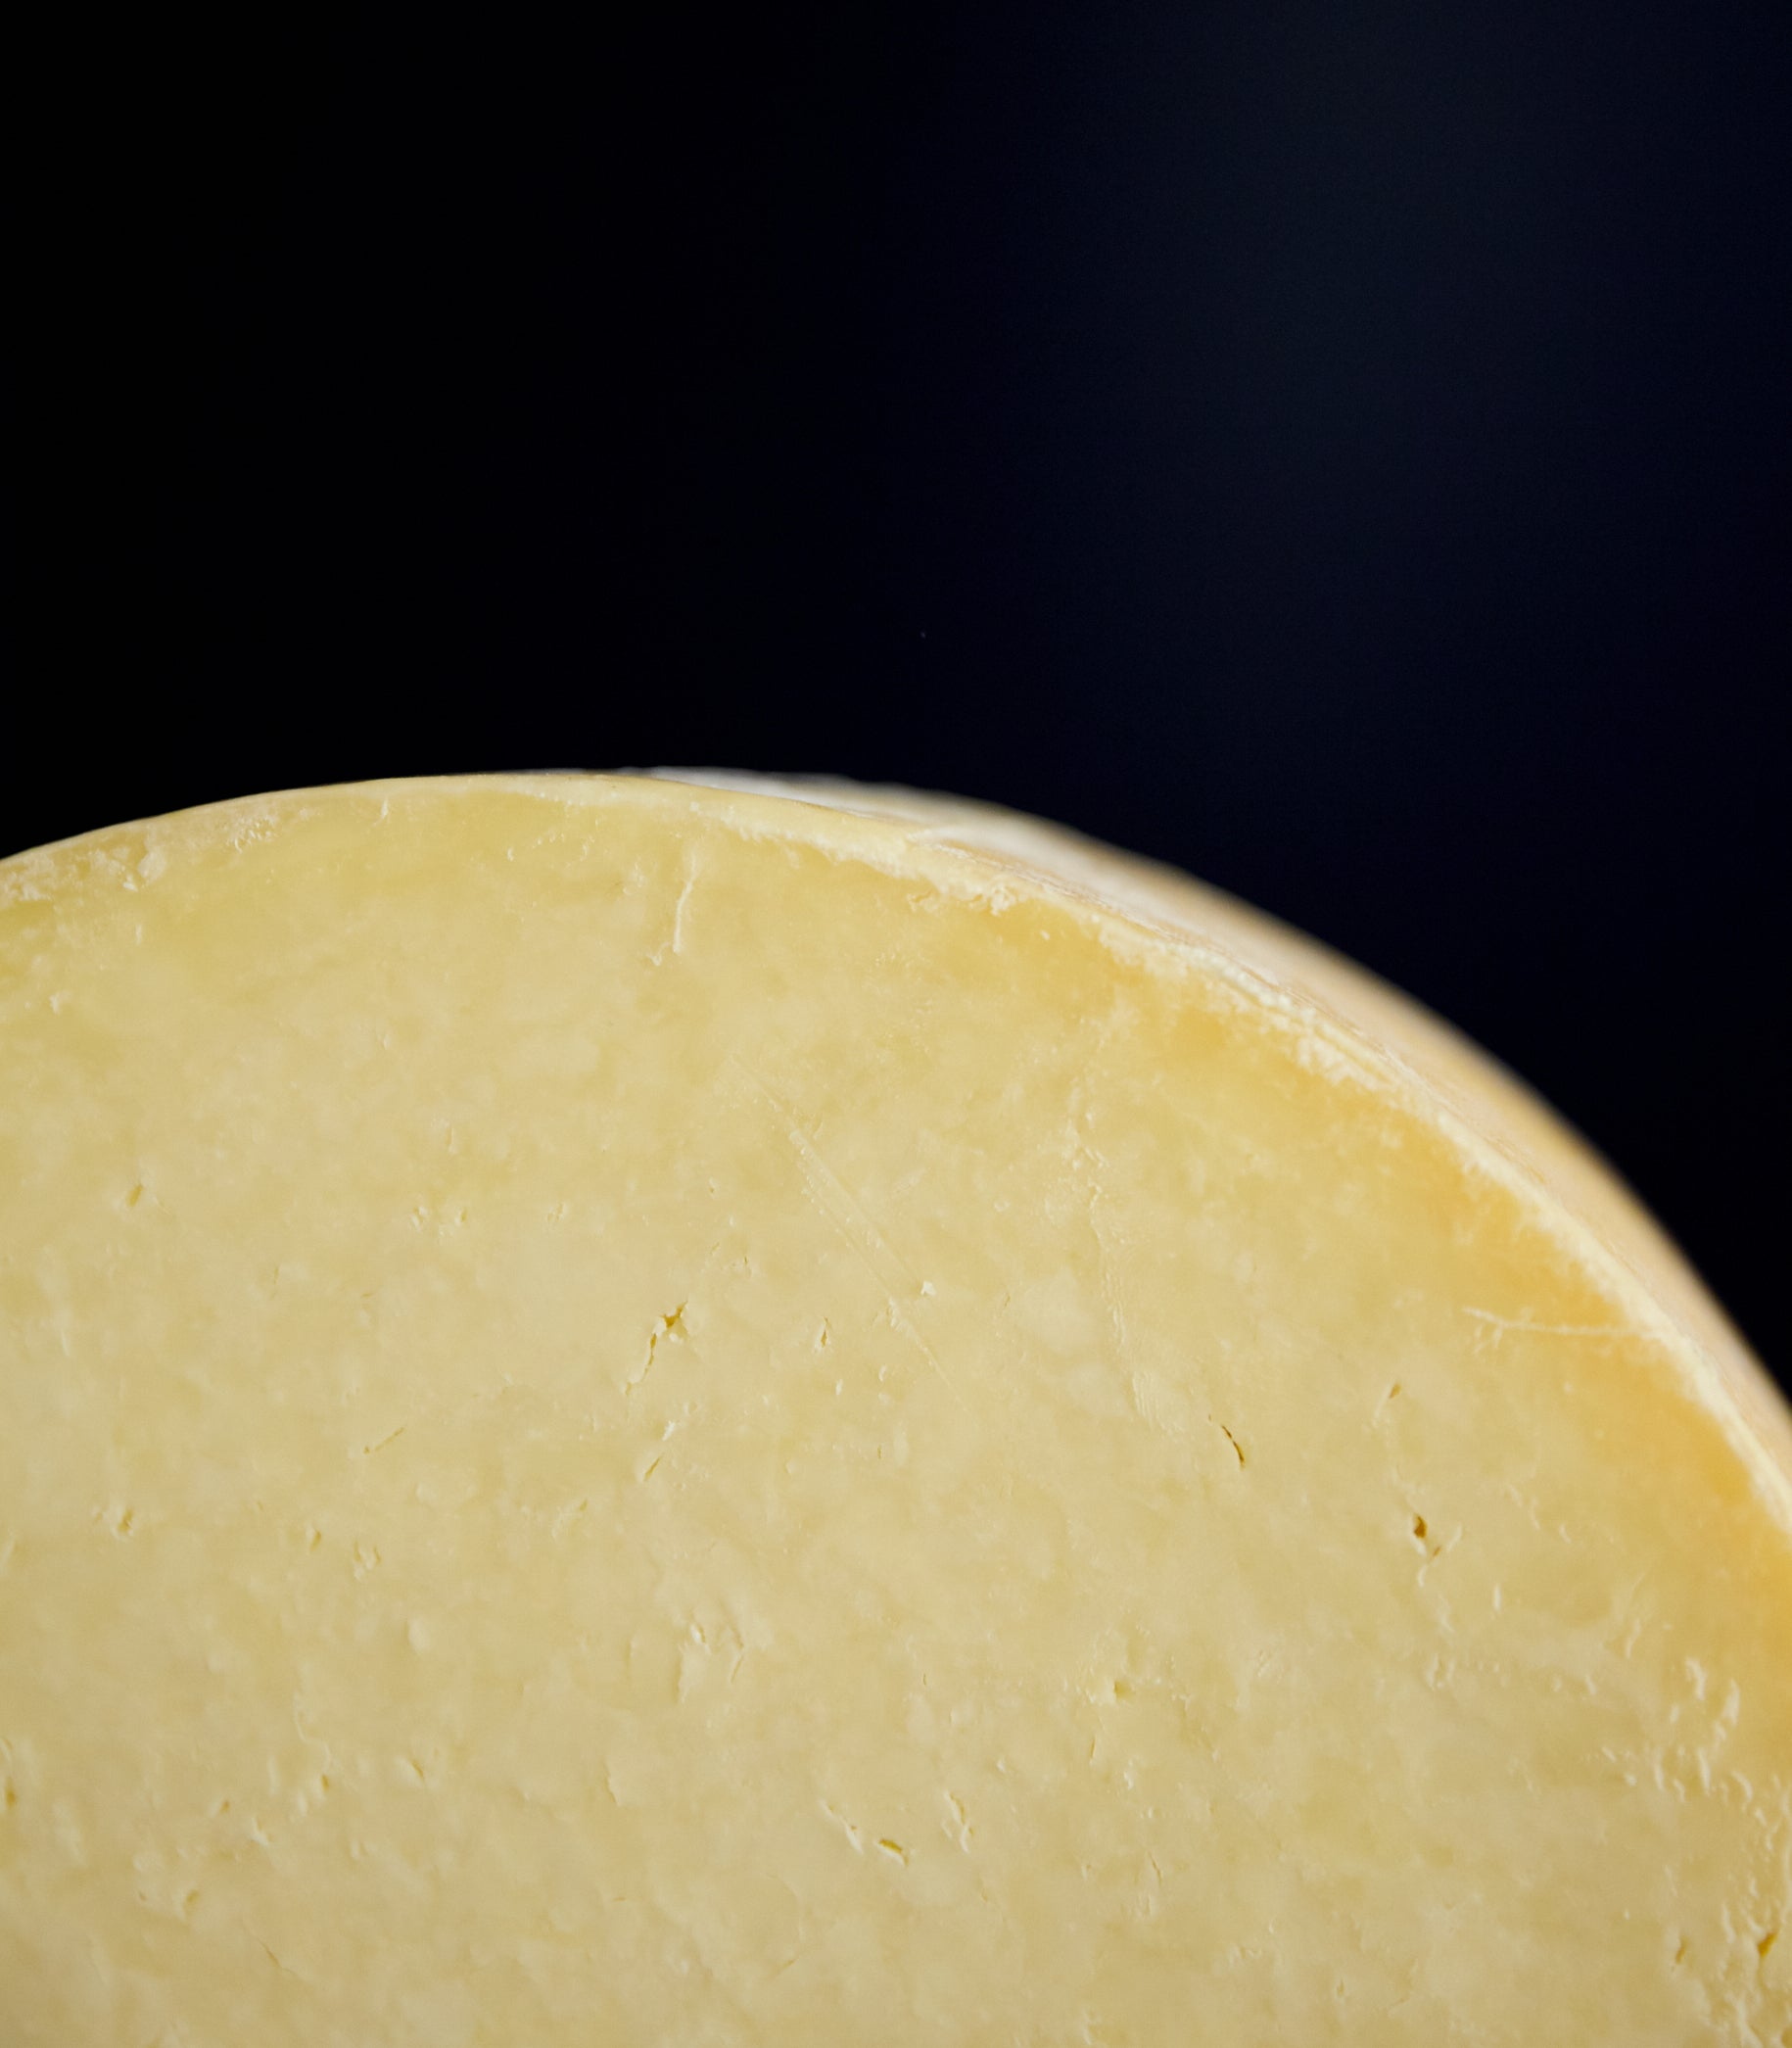 Close up of a cut cross-section of a whole Kirkham's Lancashire cheese showing the crumbly textured paste